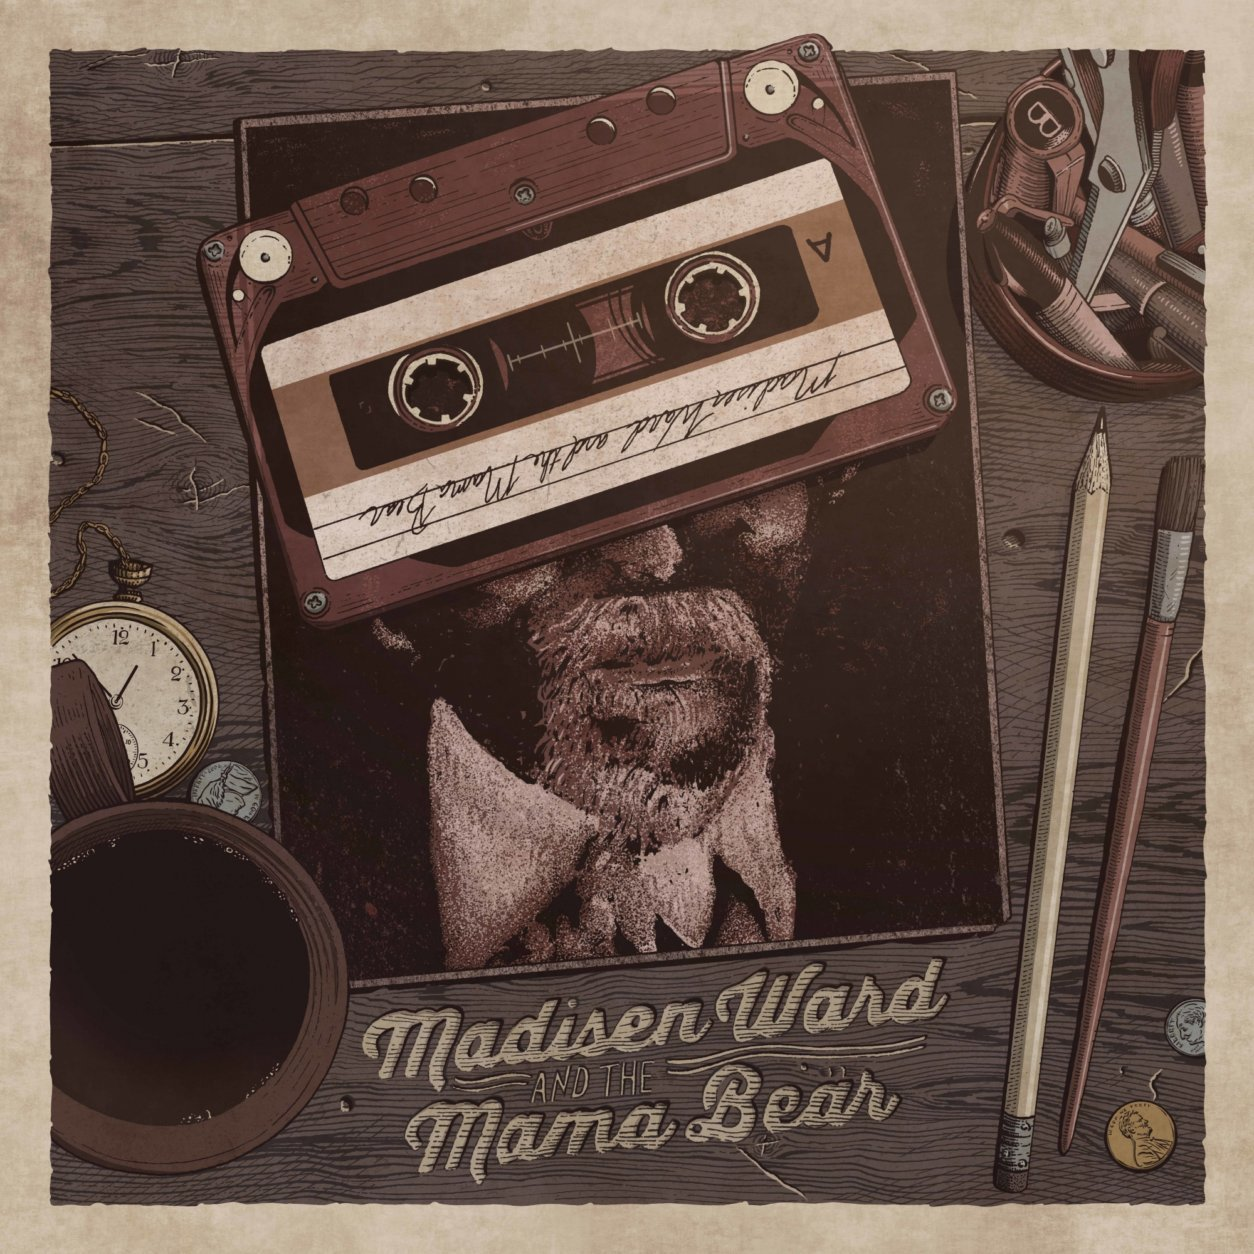 """This cover image released by Glassnote shows """"The Radio Winners,"""" by Madisen Ward and the Mama Bear, which is named one of the top ten albums of the year.  (Glassnote via AP)"""